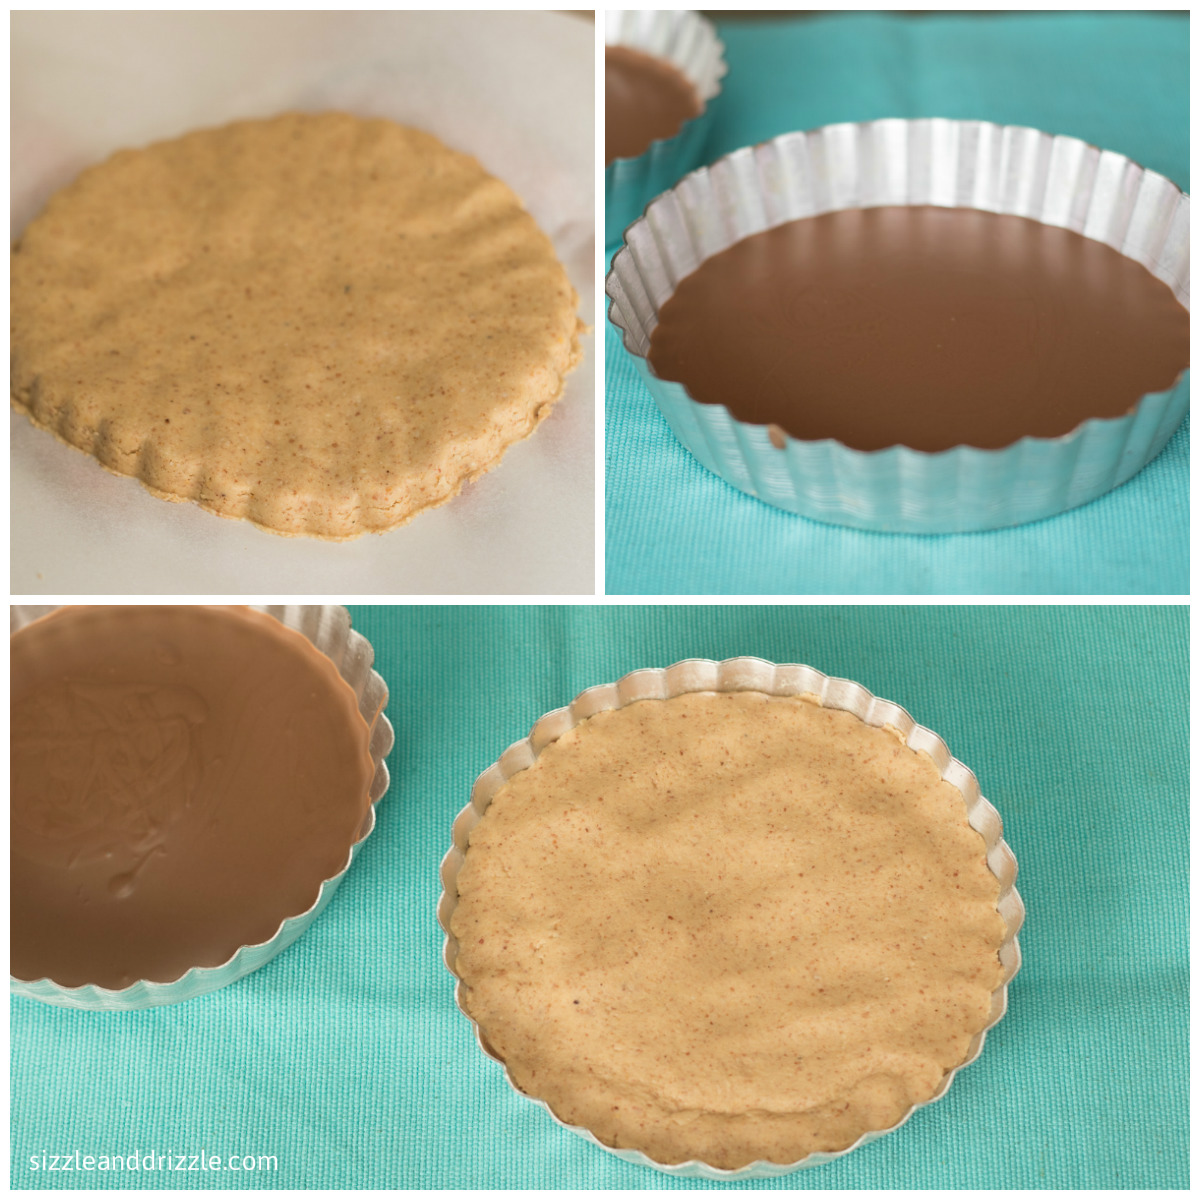 Making of peanut butter tart